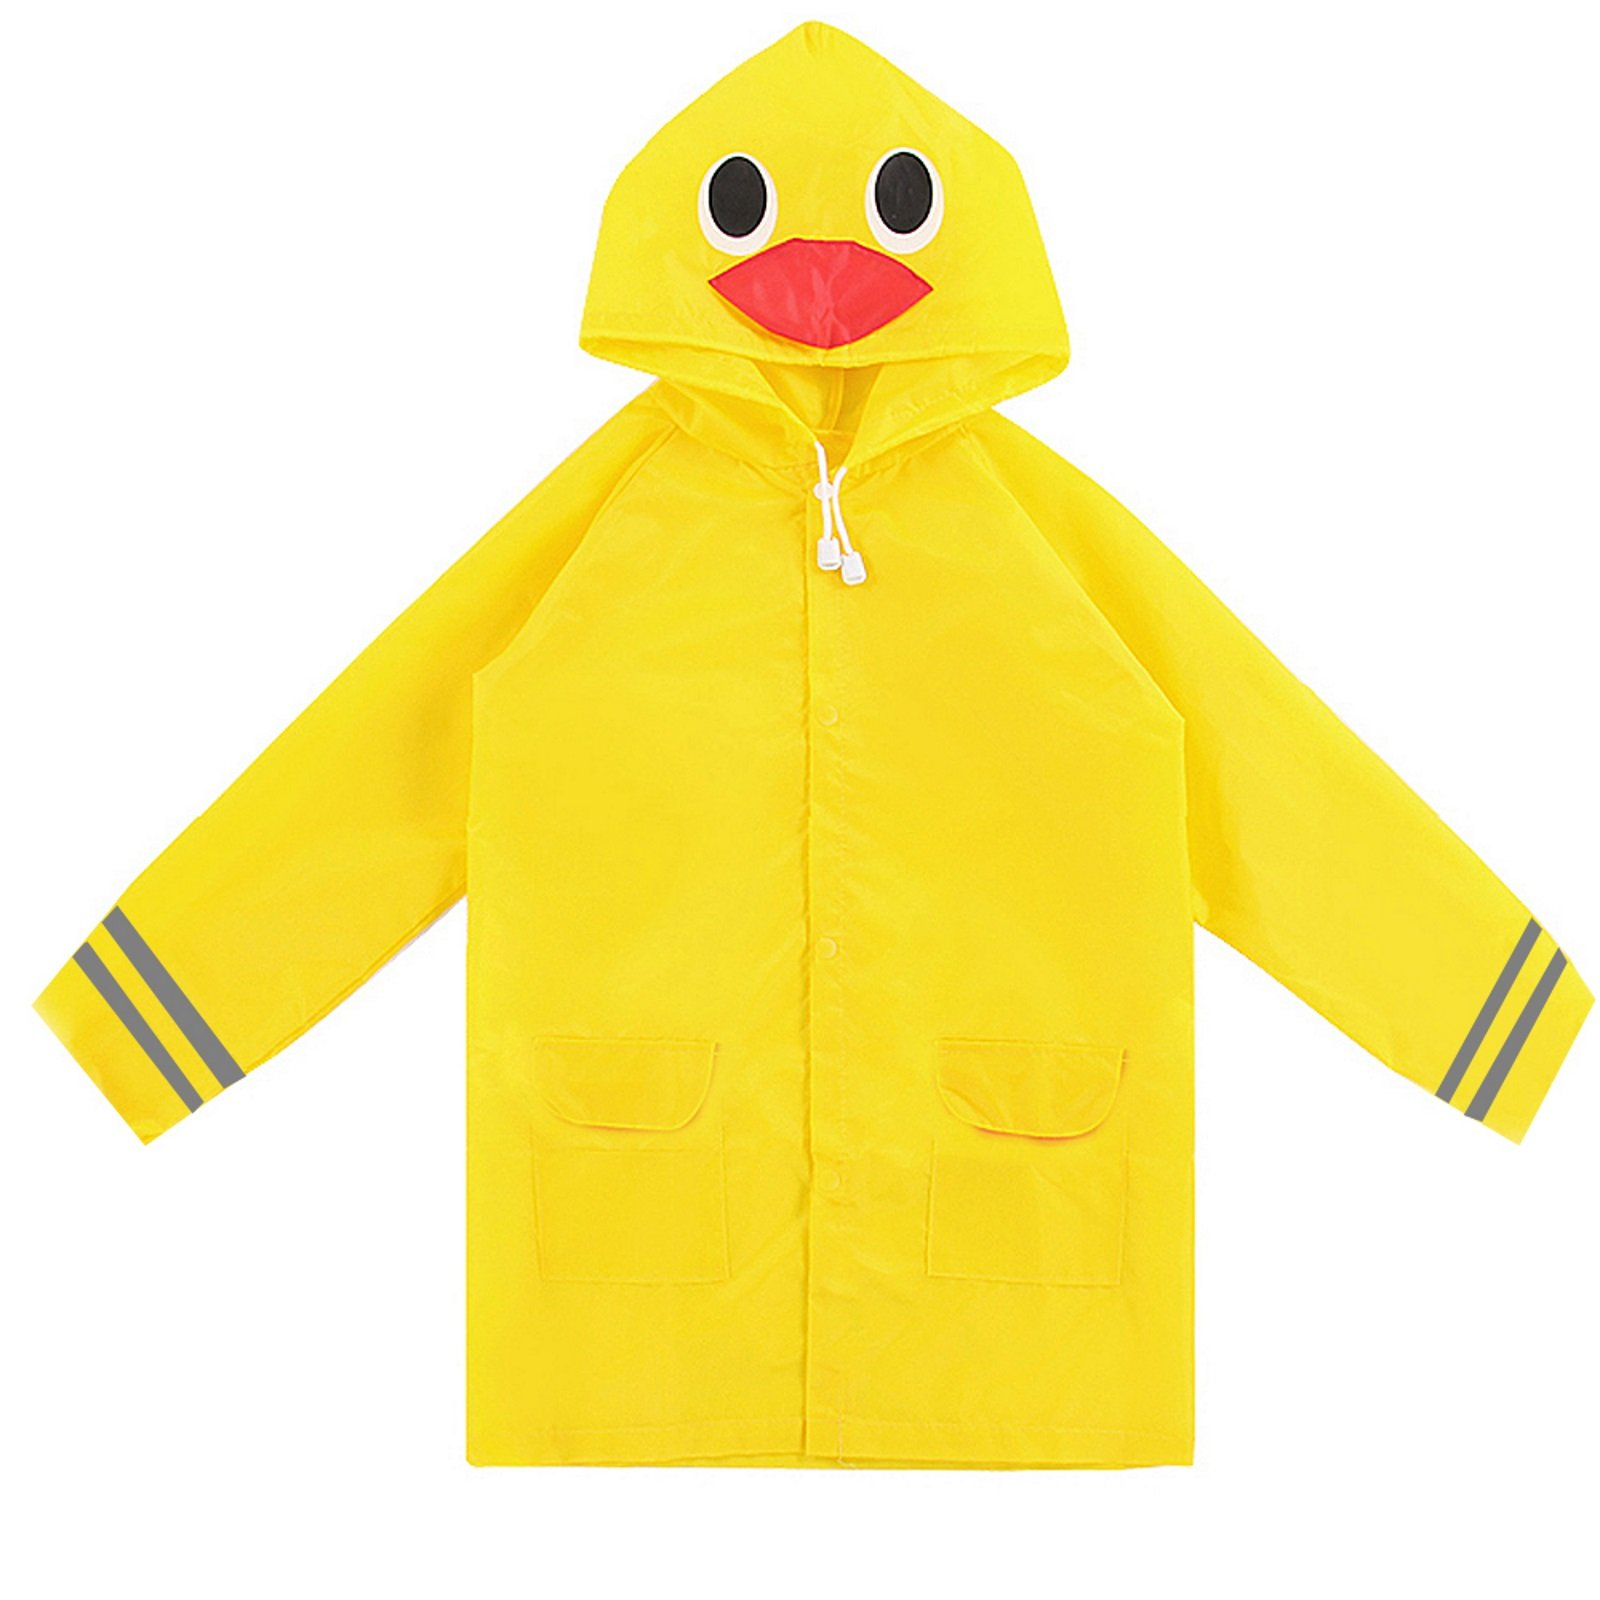 TRIBUTE Safe PVC Free Kids Rain Coat Boys or Girls Ages 7-12 Rain Poncho For Children With Zipper Fun Raincoat, Yellow Duck by TRIBUTE (Image #2)